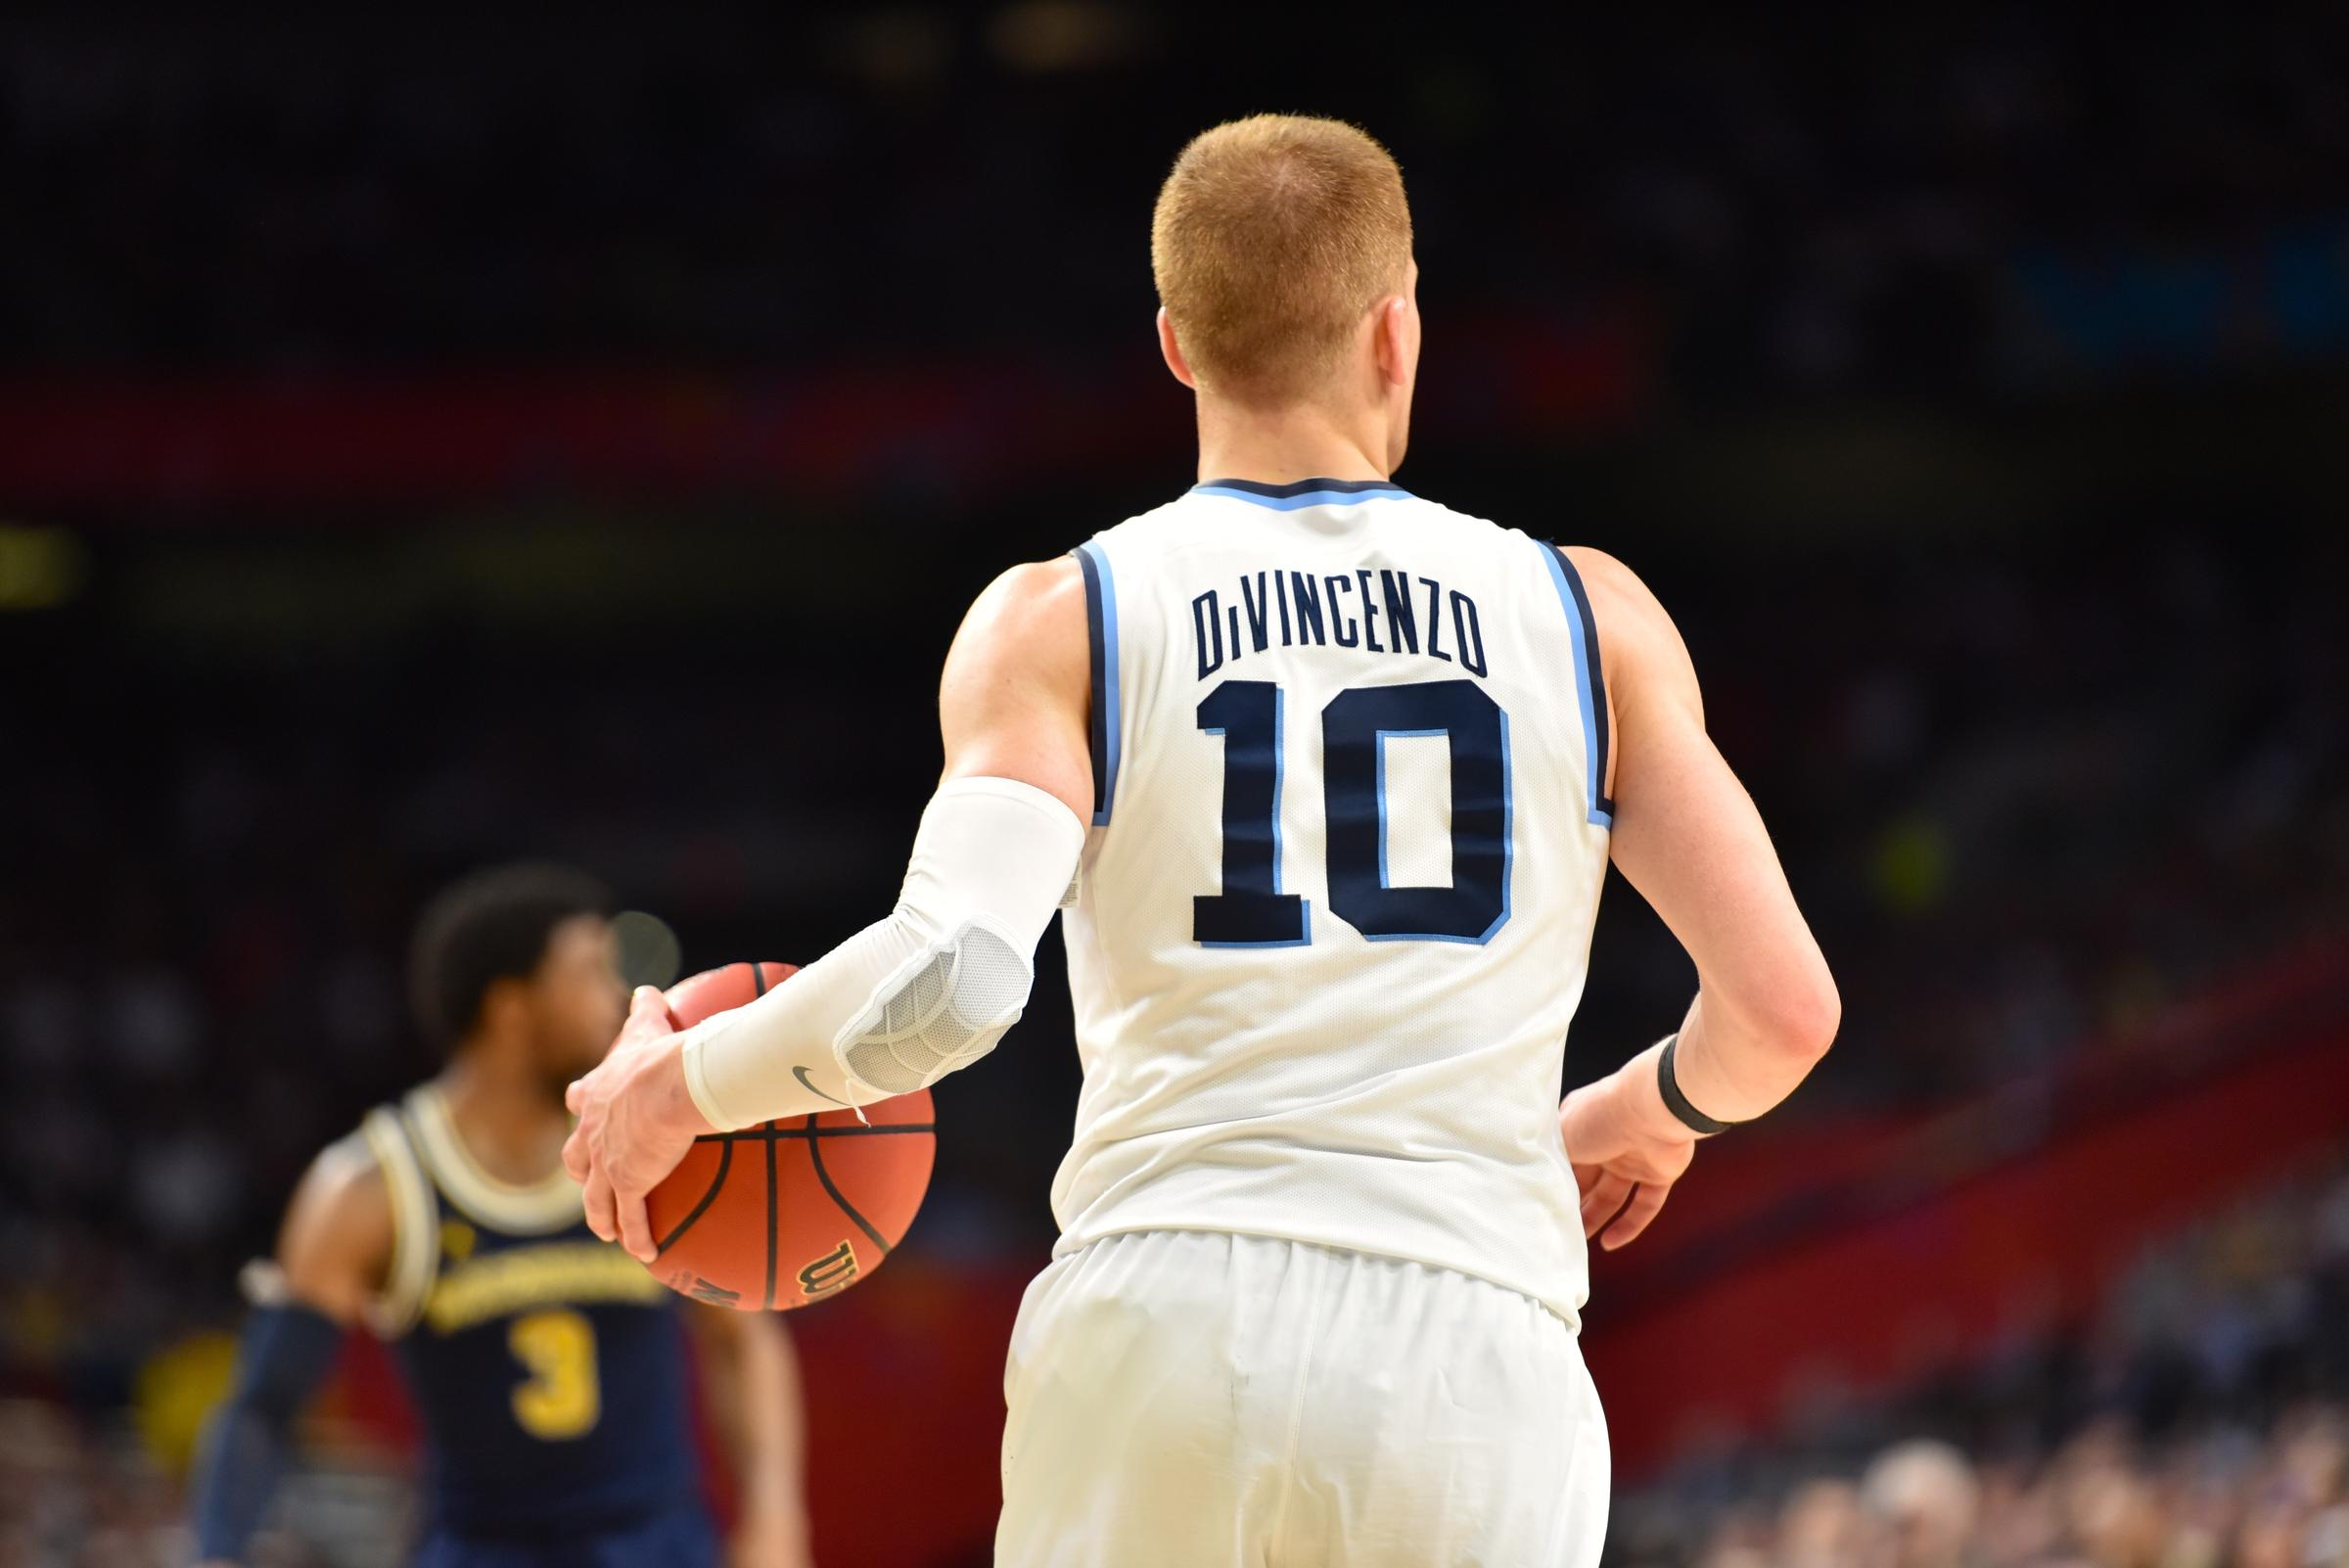 8efe16bb9e5b Villanova took home the NCAA men s basketball title Monday after beating  Michigan 79 to 62. Wildcats sophomore guard Donte DiVincenzo came off the  bench to ...